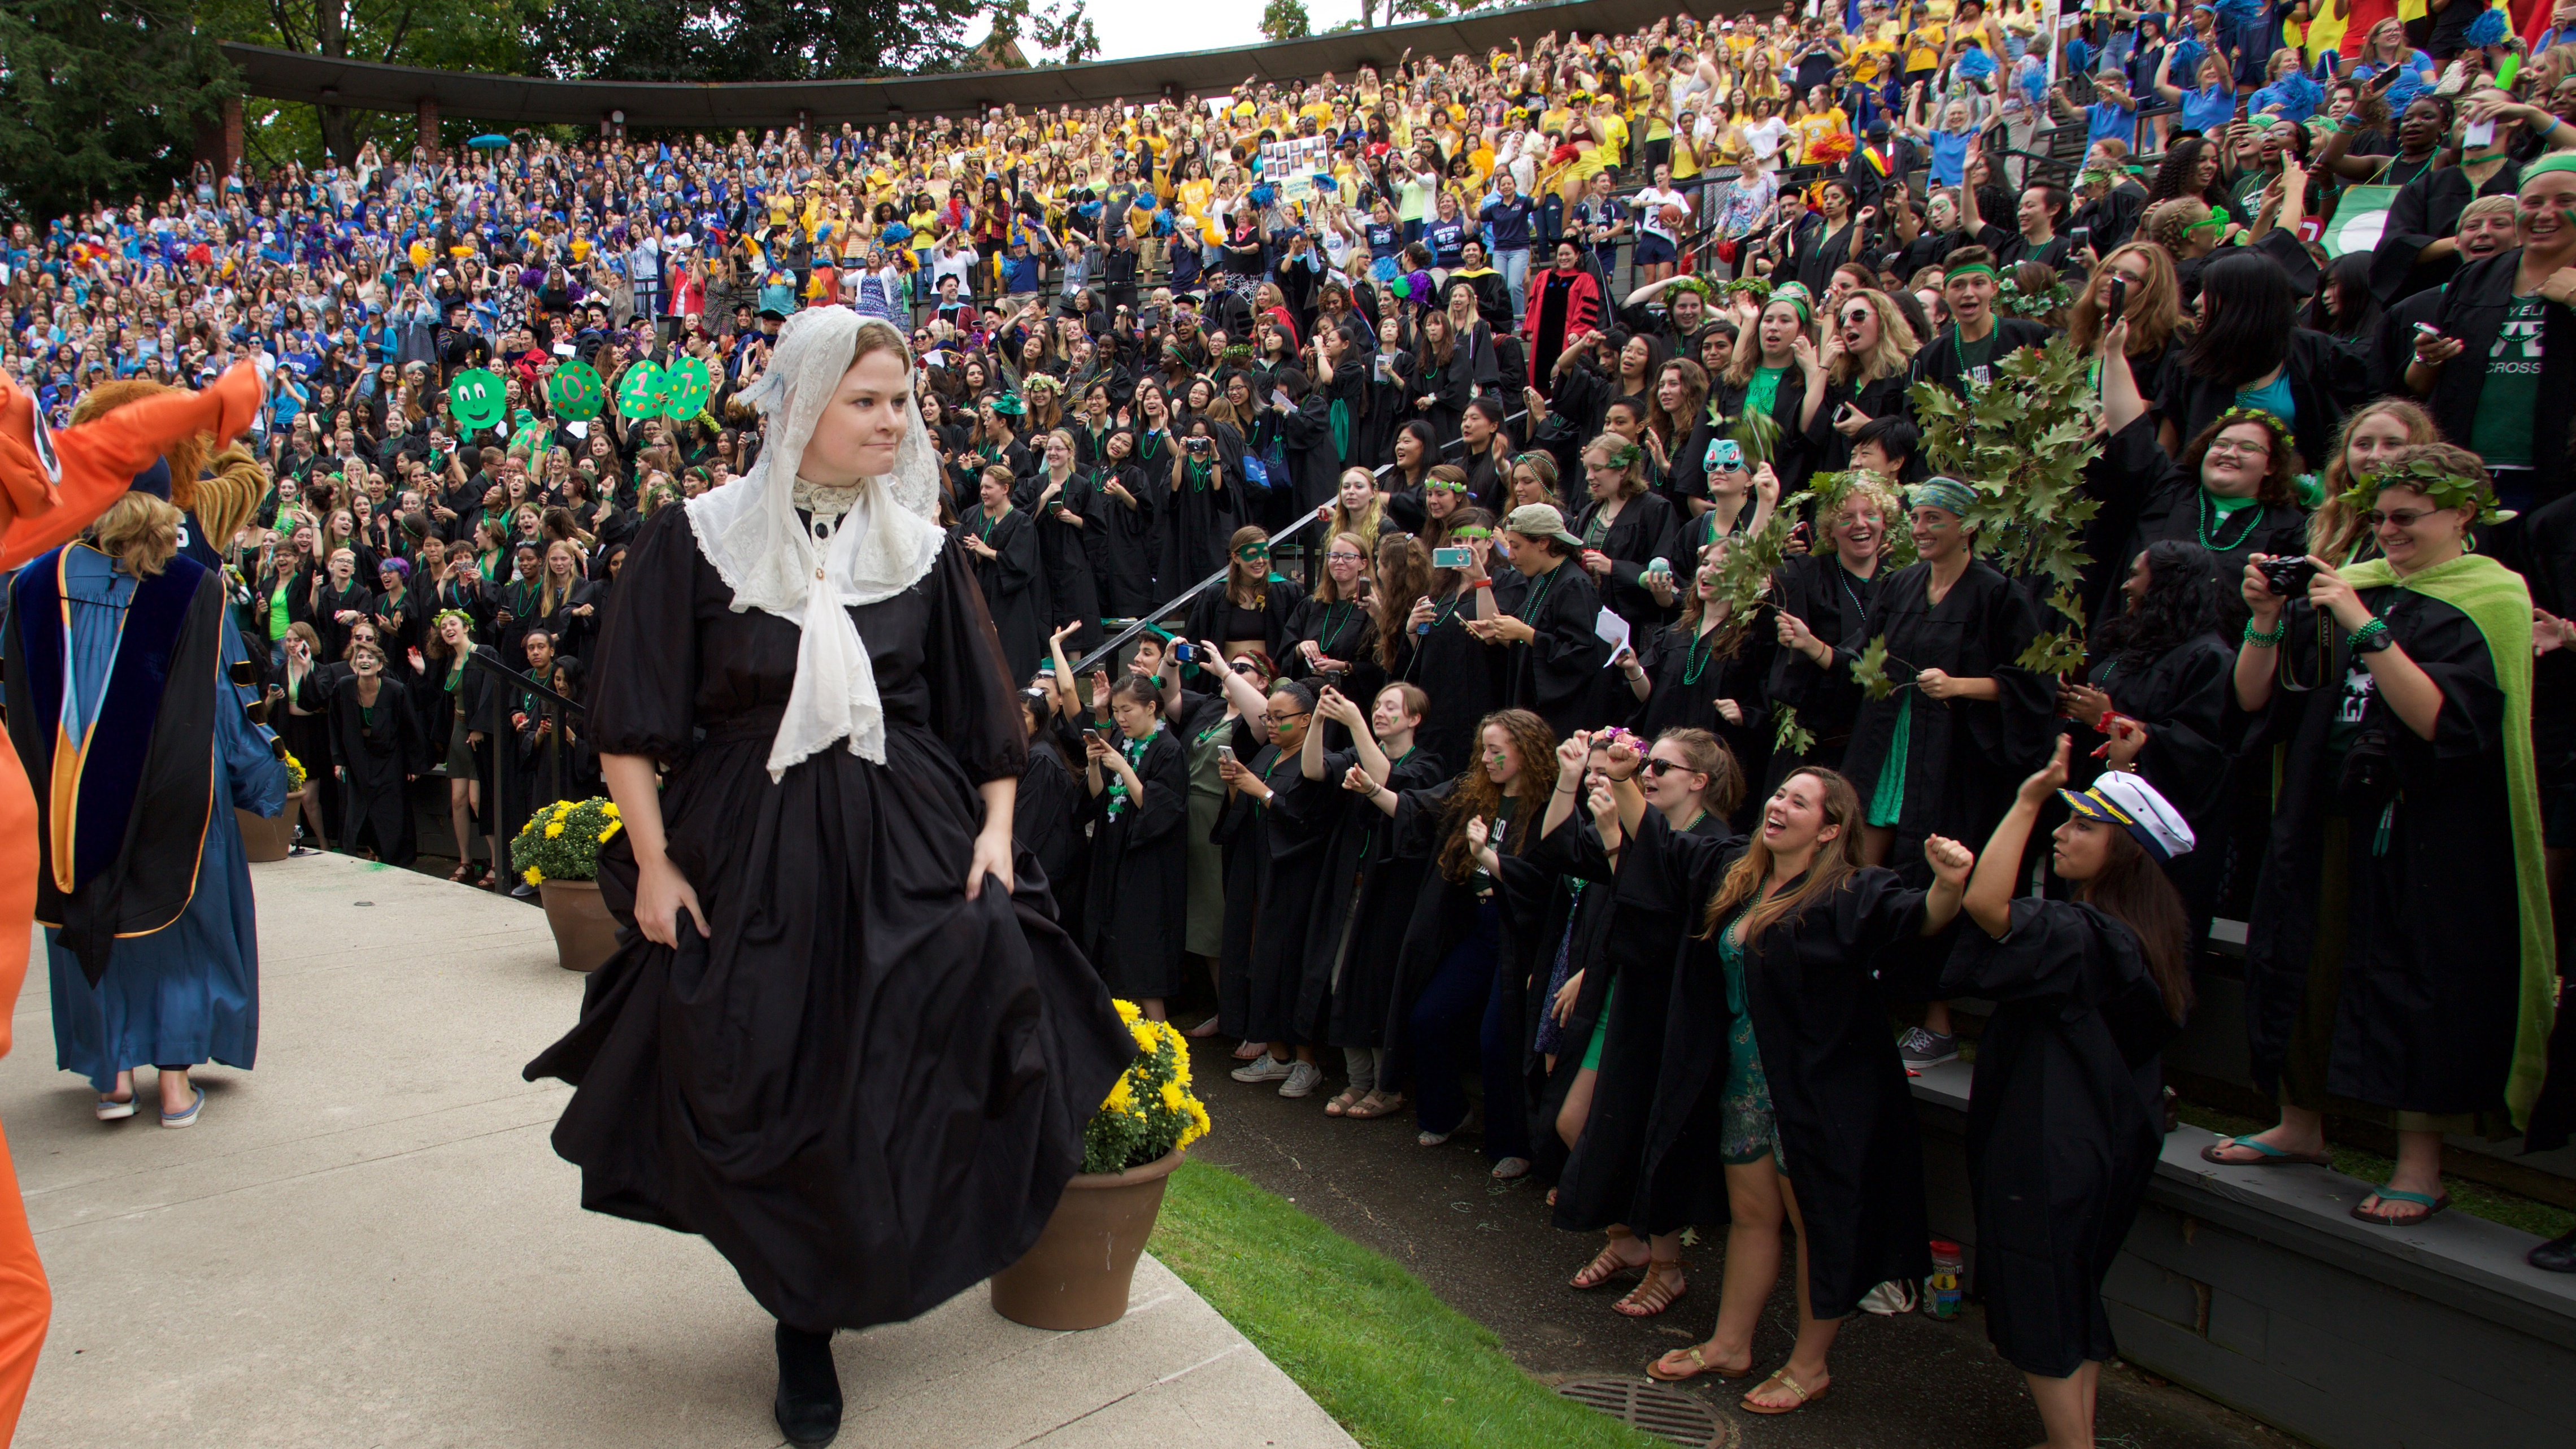 Convocation is about celebration